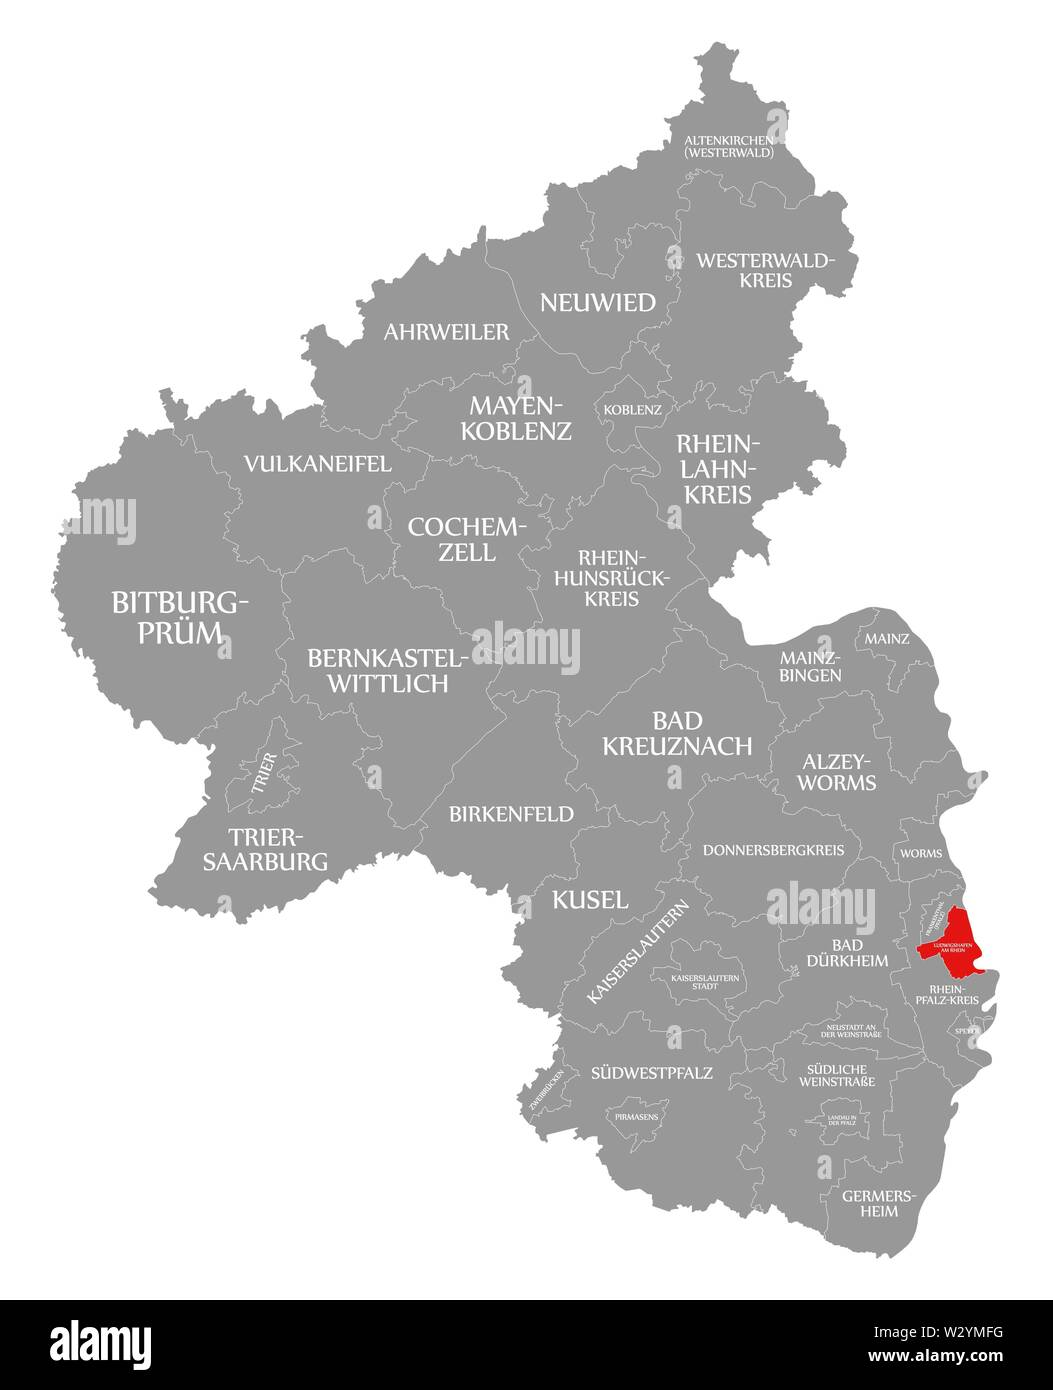 Ludwigshafen am Rhein red highlighted in map of Rhineland Palatinate DE - Stock Image